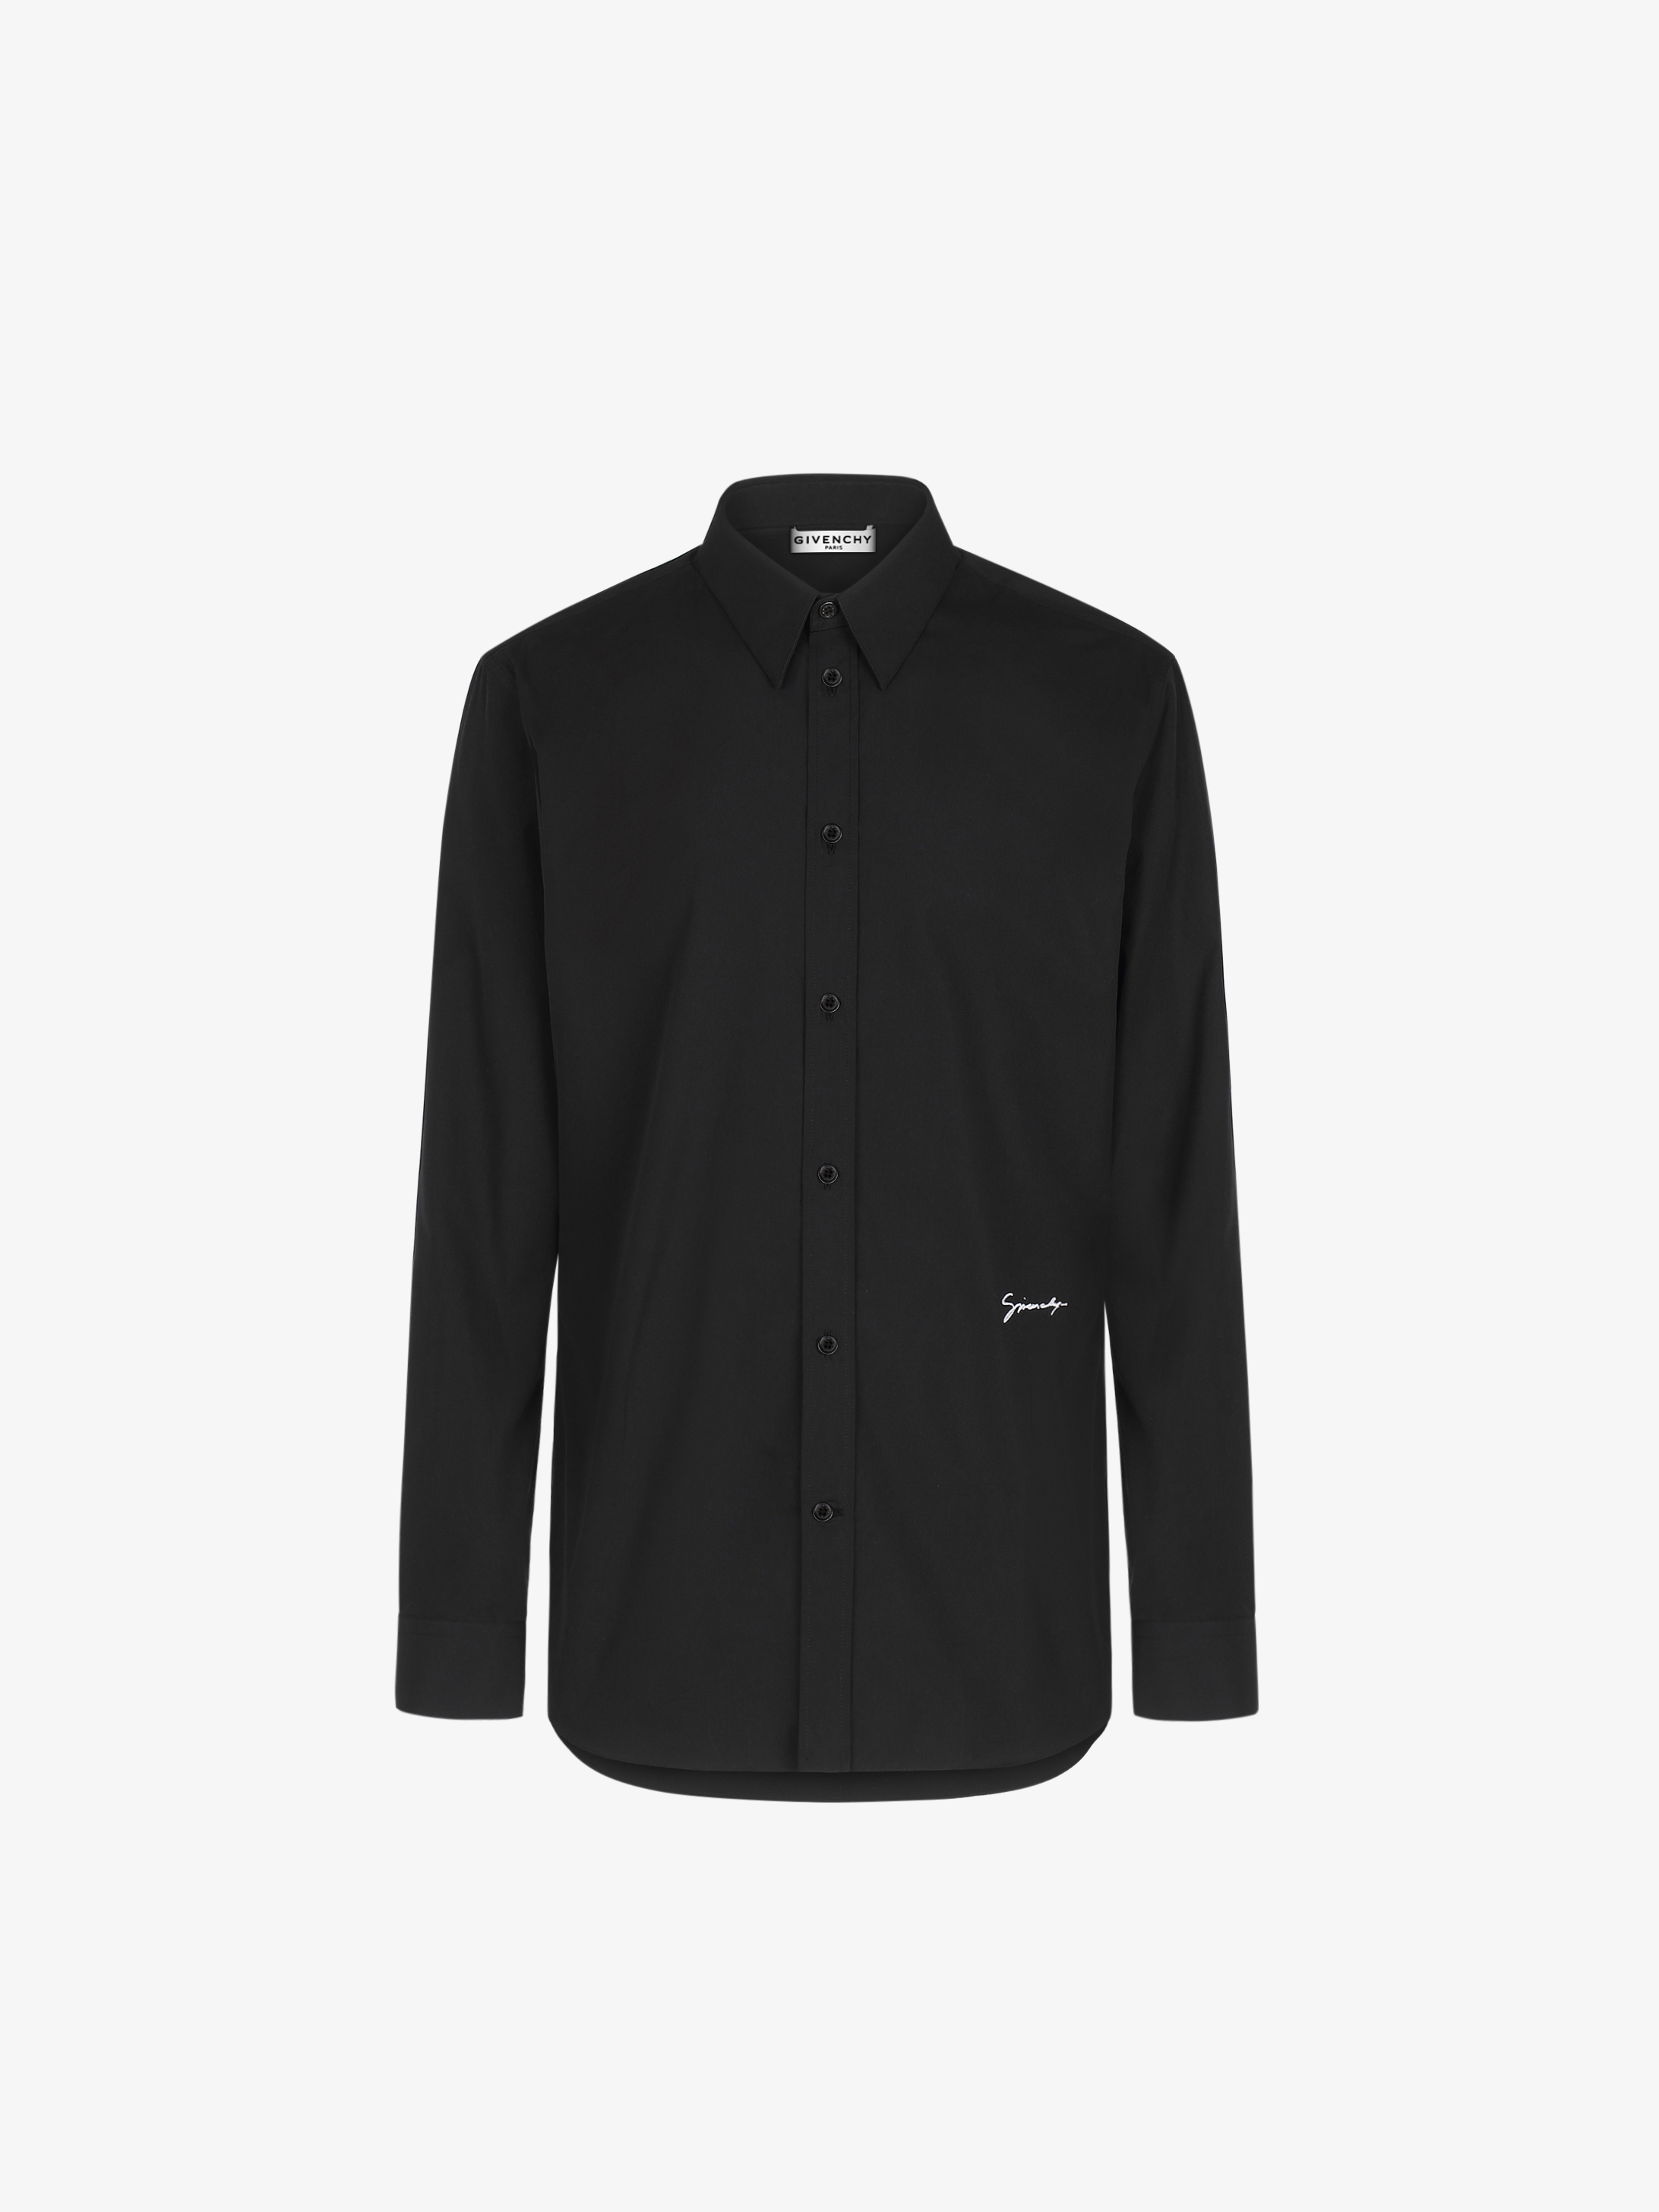 Givenchy embroidered shirt in coton